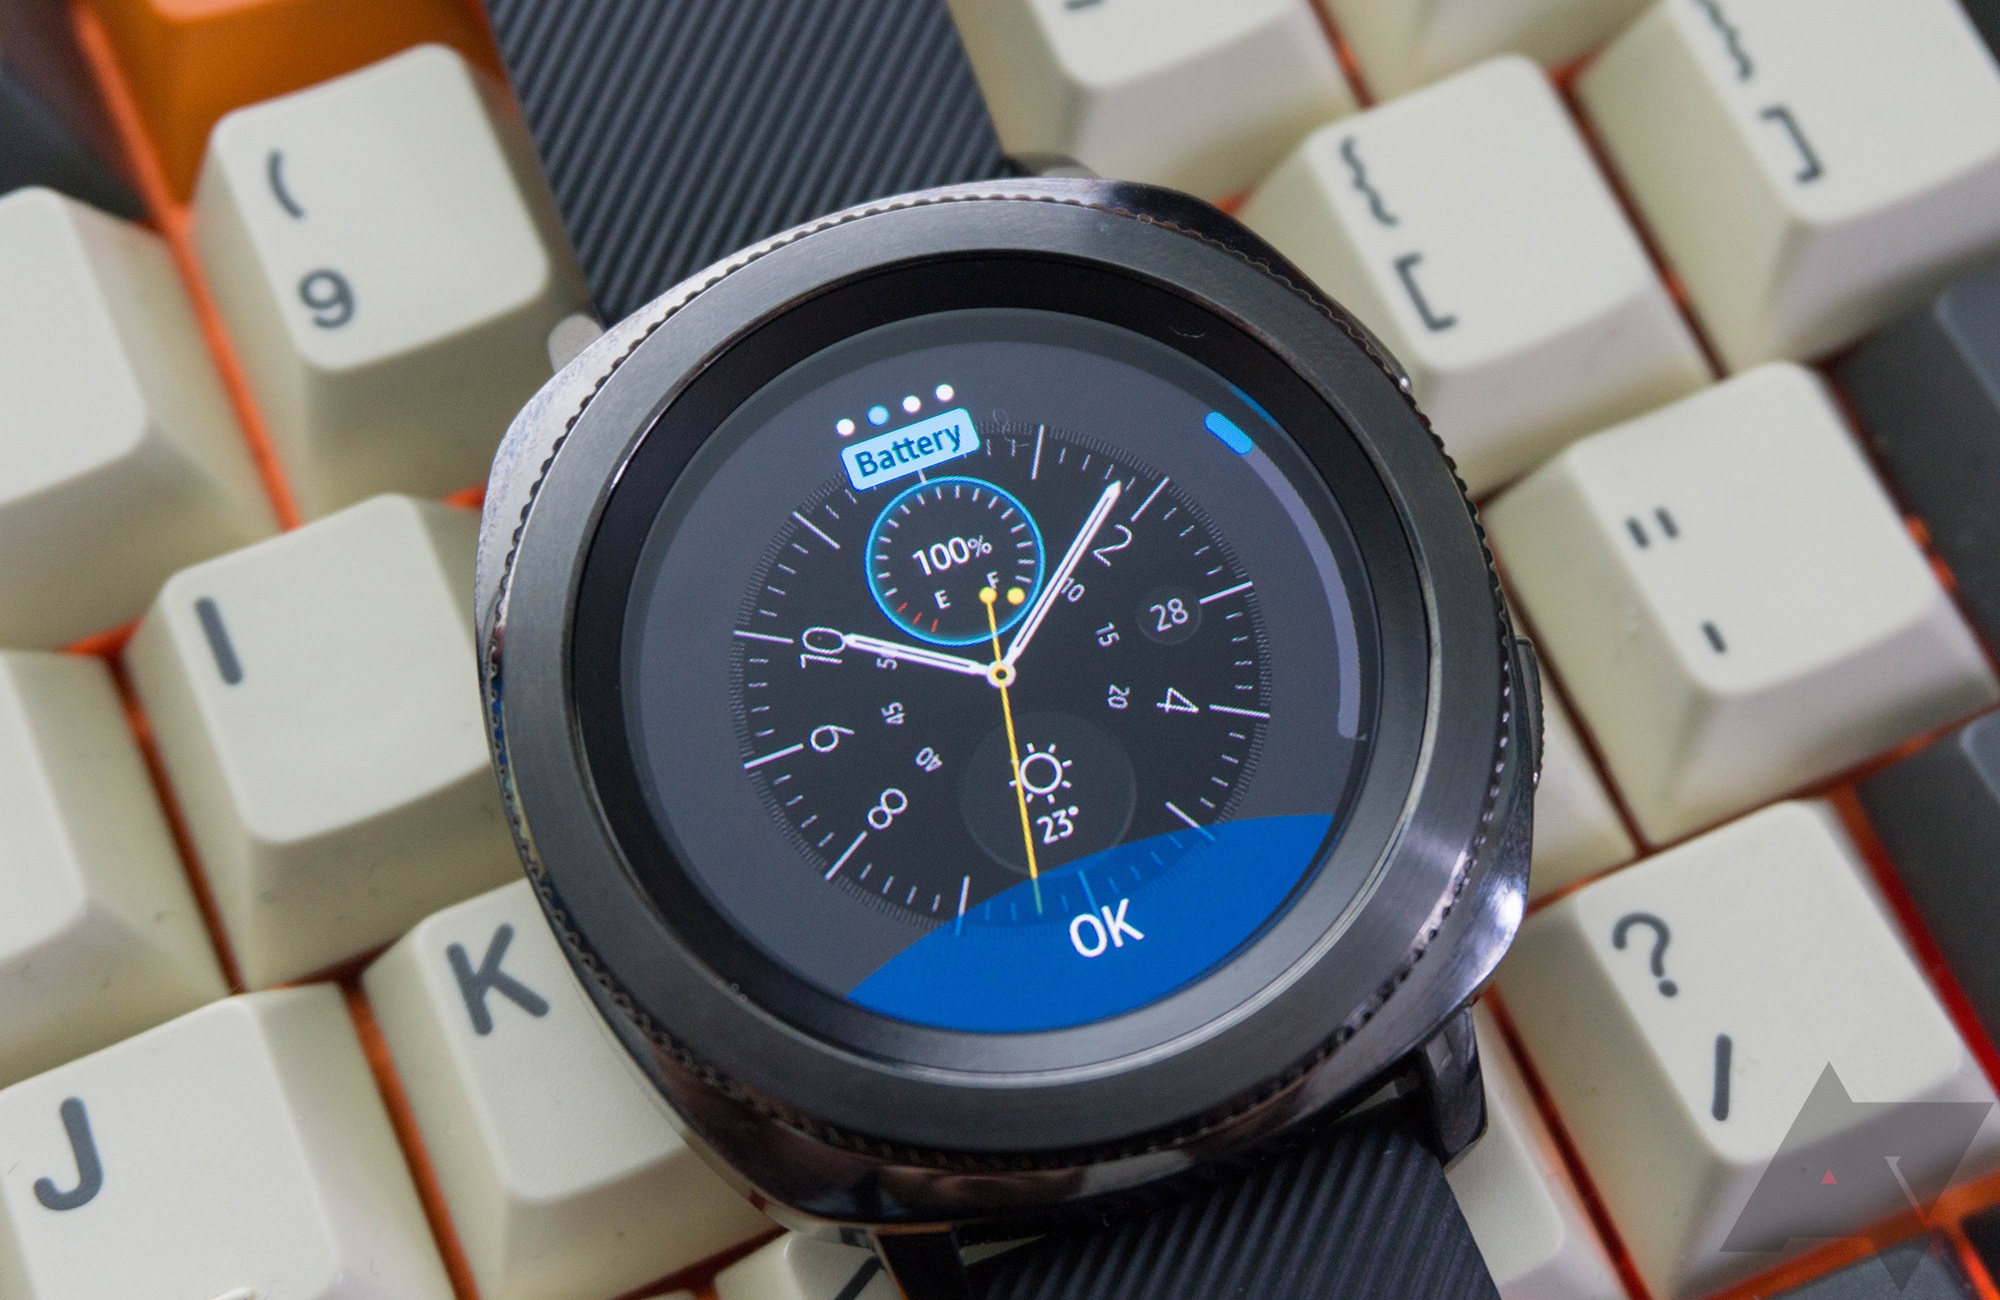 Samsung gear sport review a smartwatch regular people might actually buy for Watches gear